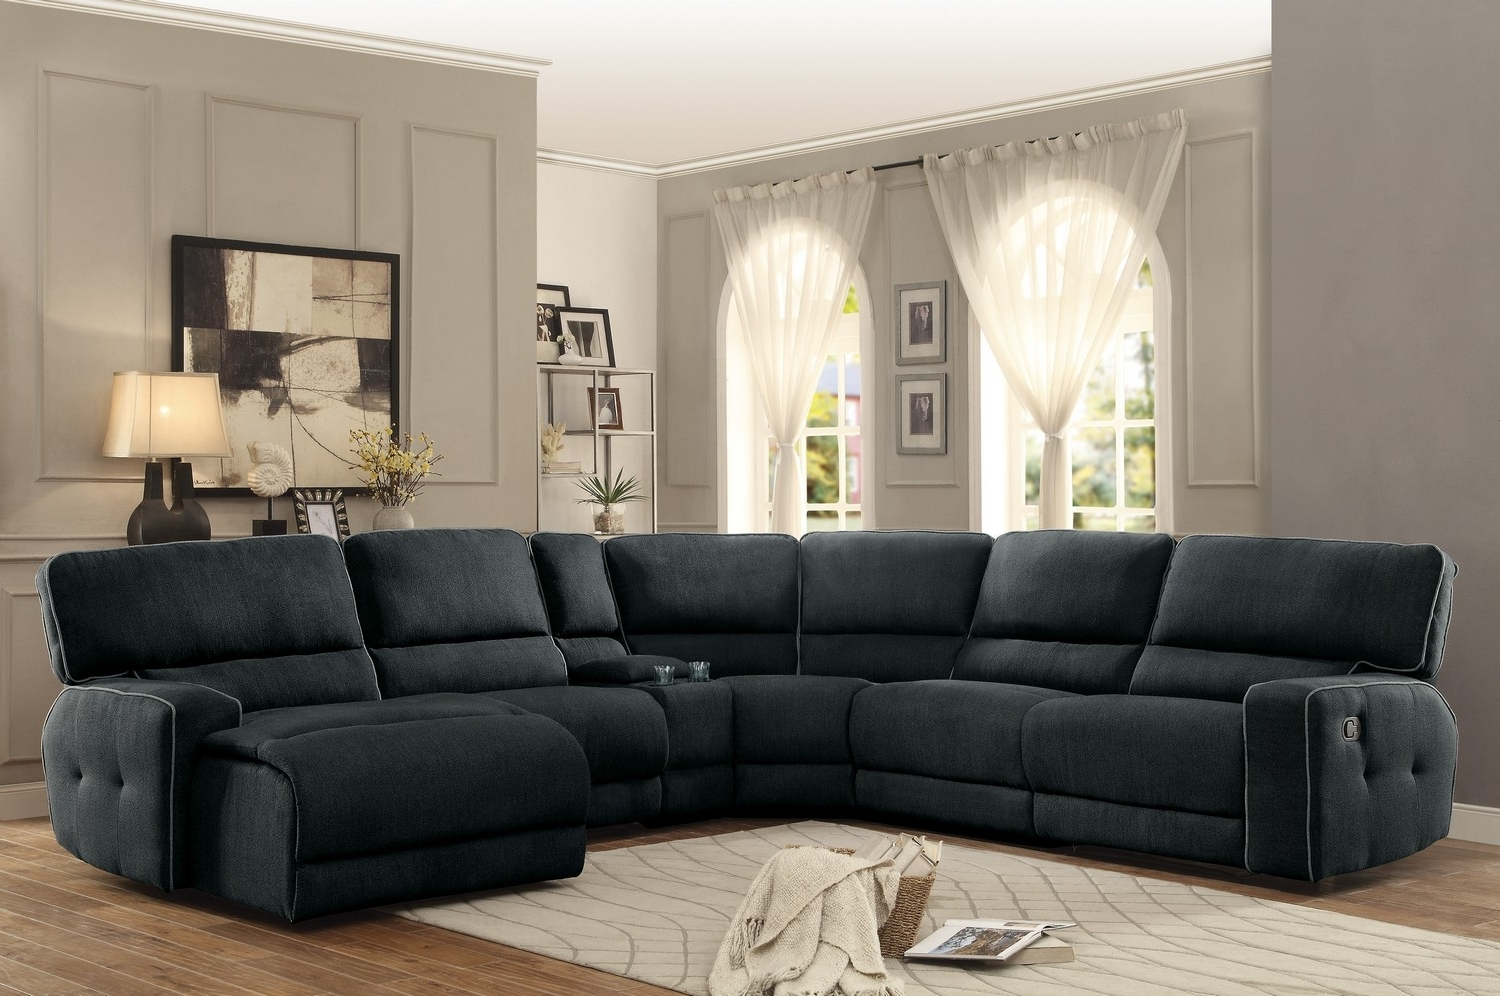 Dallas Sectional Sofas Regarding Popular Homelegance Keamey Reclining Sectional Sofa Set A – Polyester (Gallery 8 of 20)